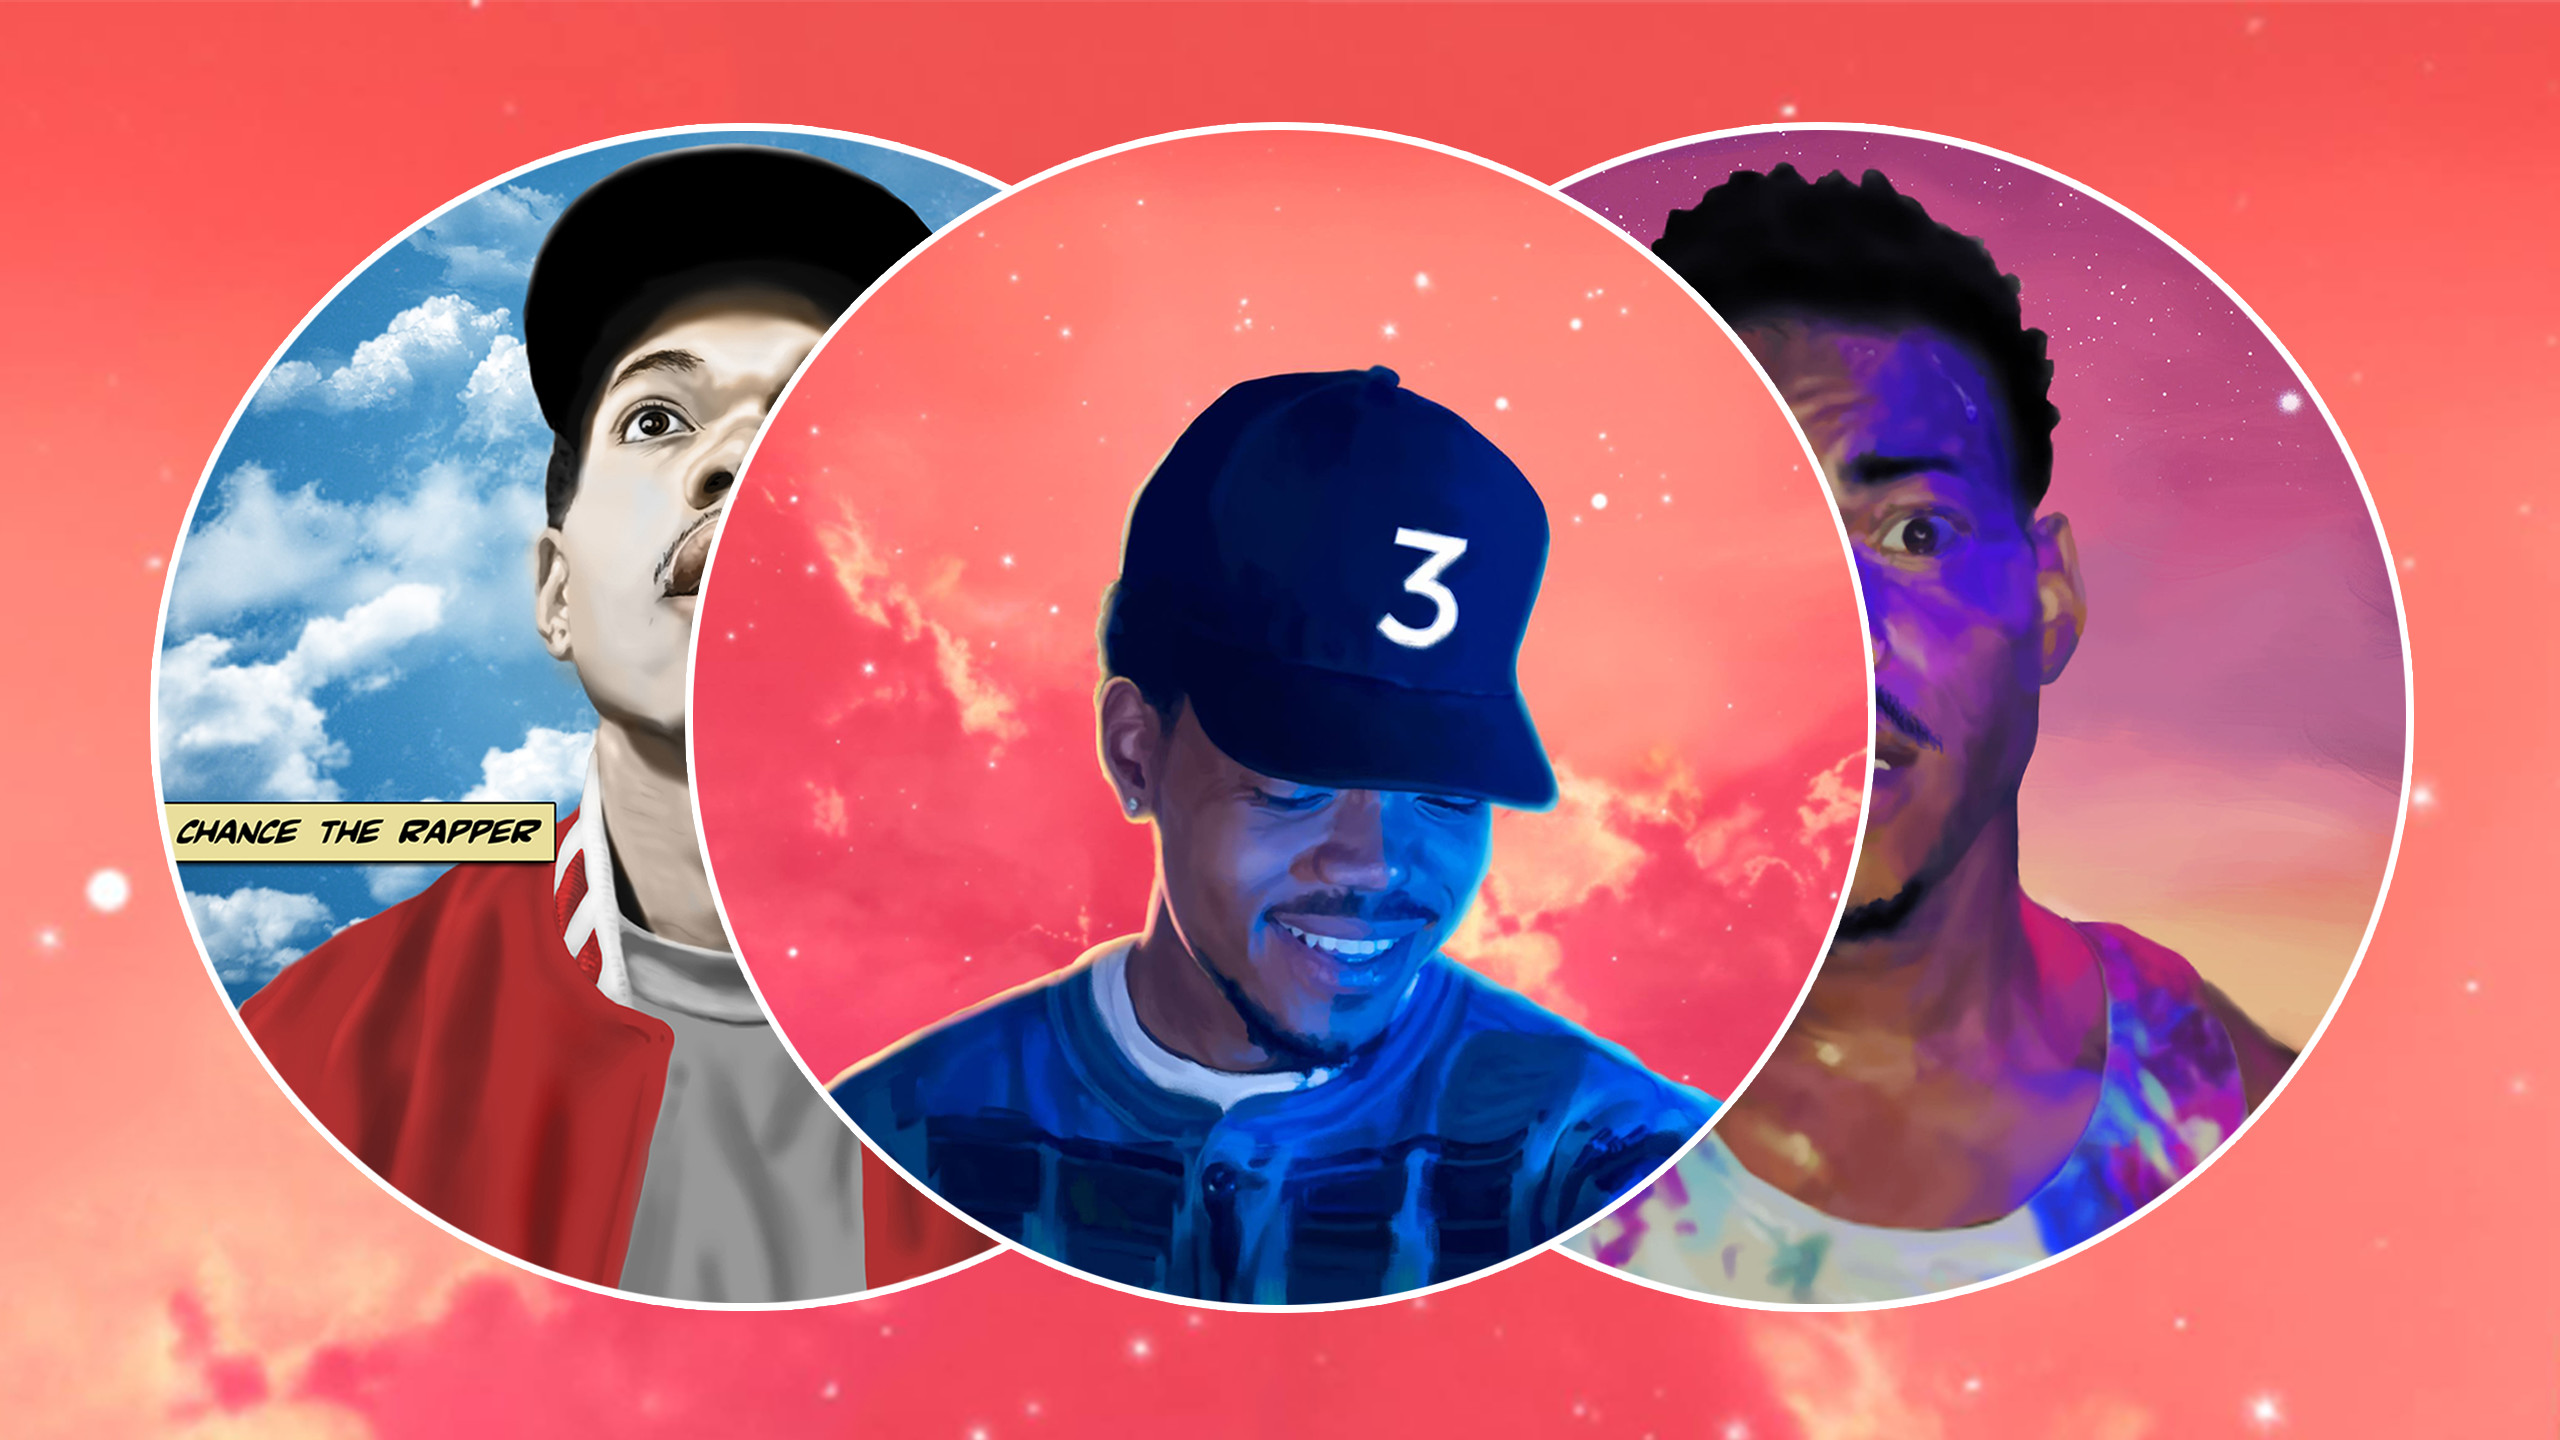 Some Chance The Rapper Desktop Wallpapers I Just Made Chance The